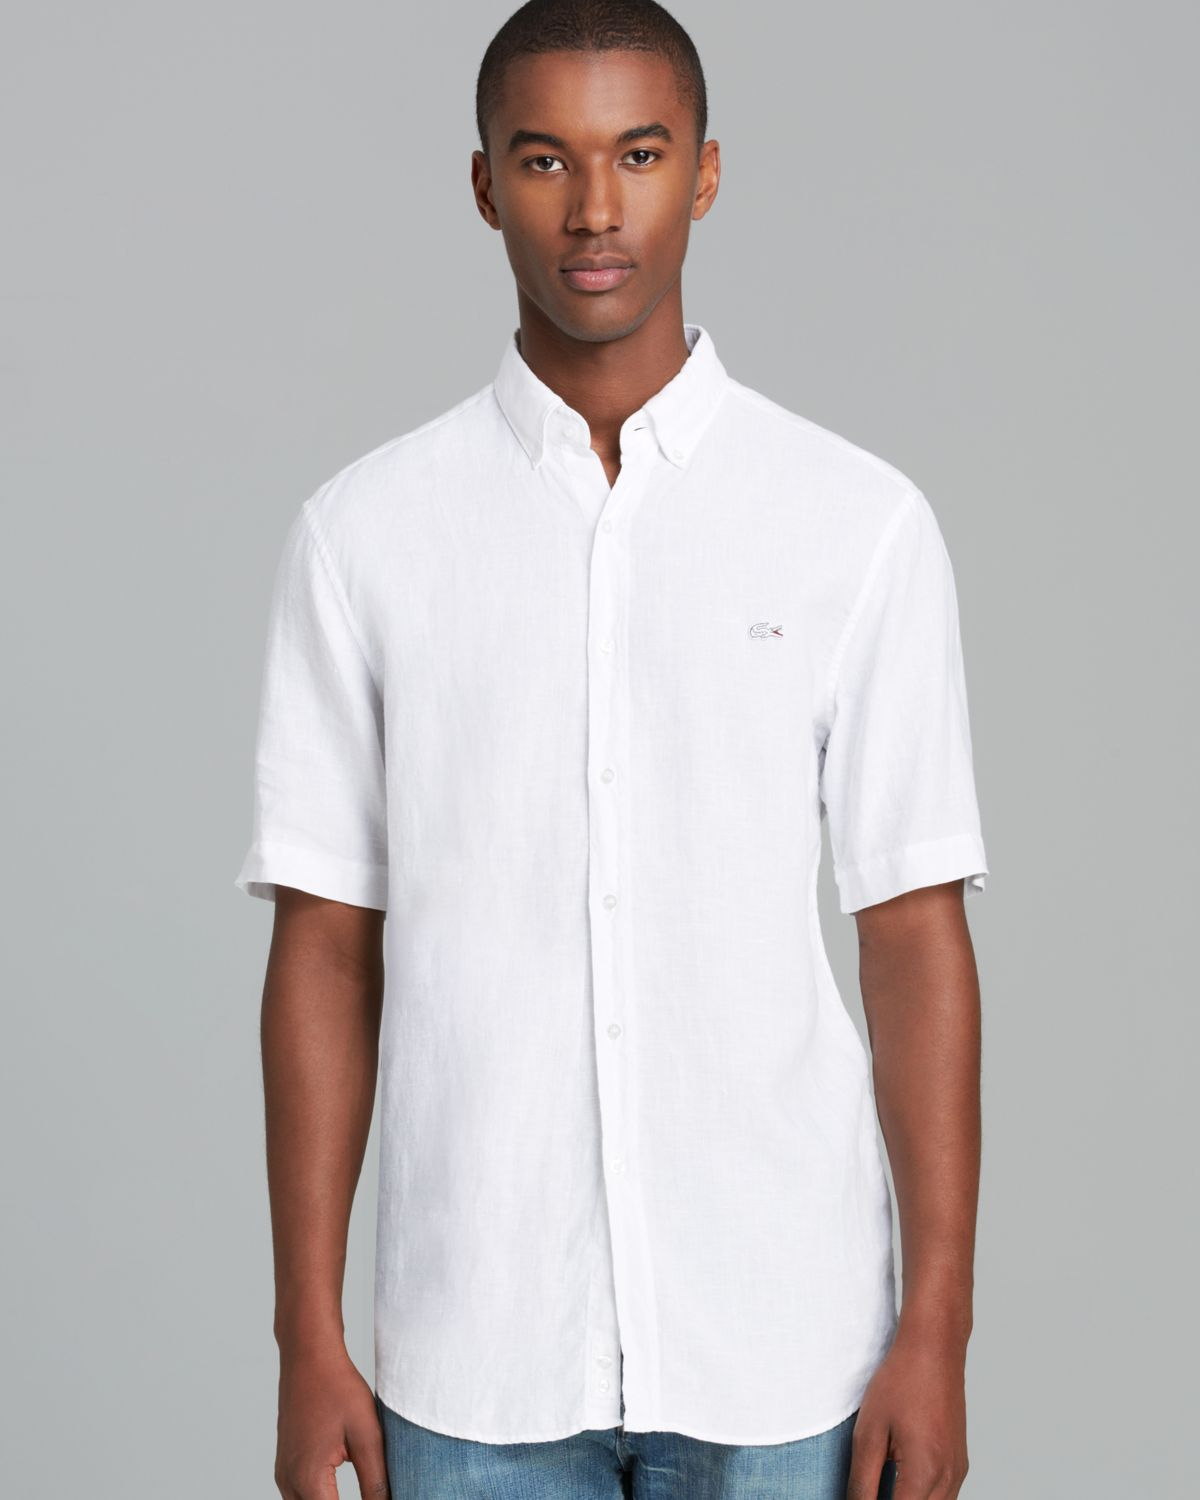 Find boys white linen shirt at ShopStyle. Shop the latest collection of boys white linen shirt from the most popular stores - all in one place. Old Navy Linen-Blend Shirt for Boys $ $ Get a Sale Alert Free Shipping $50+ at River Island River Island Boys white linen short sleeve shirt $16 $24 Get a Sale Alert at Harrods Stone.